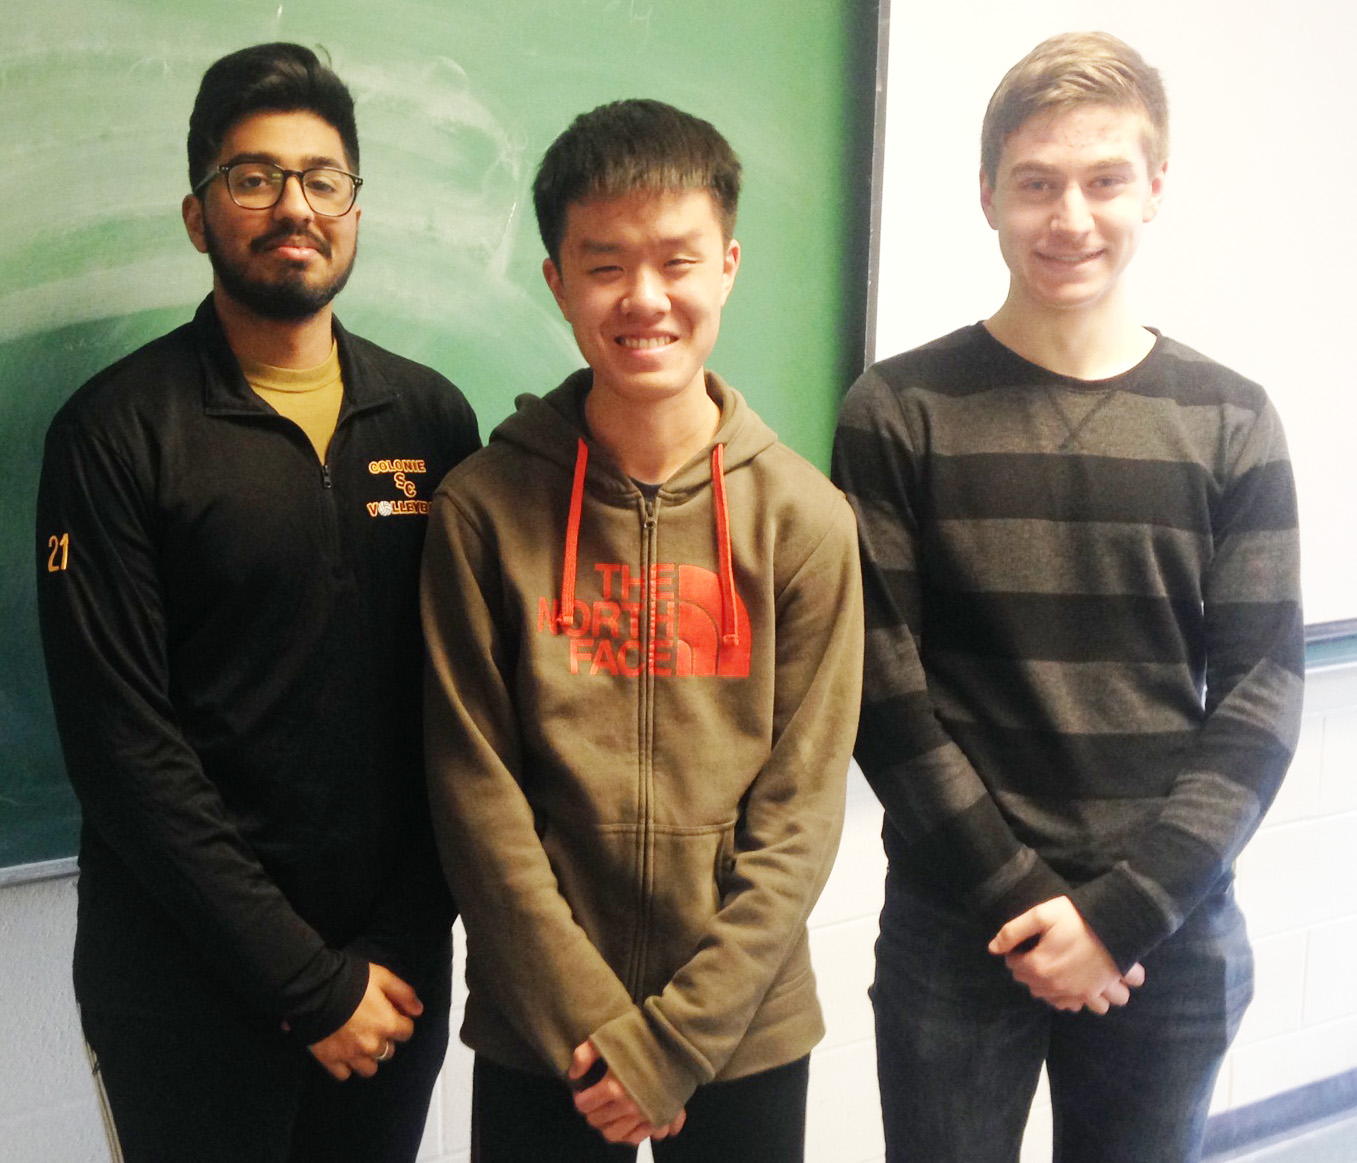 three high school students stand together